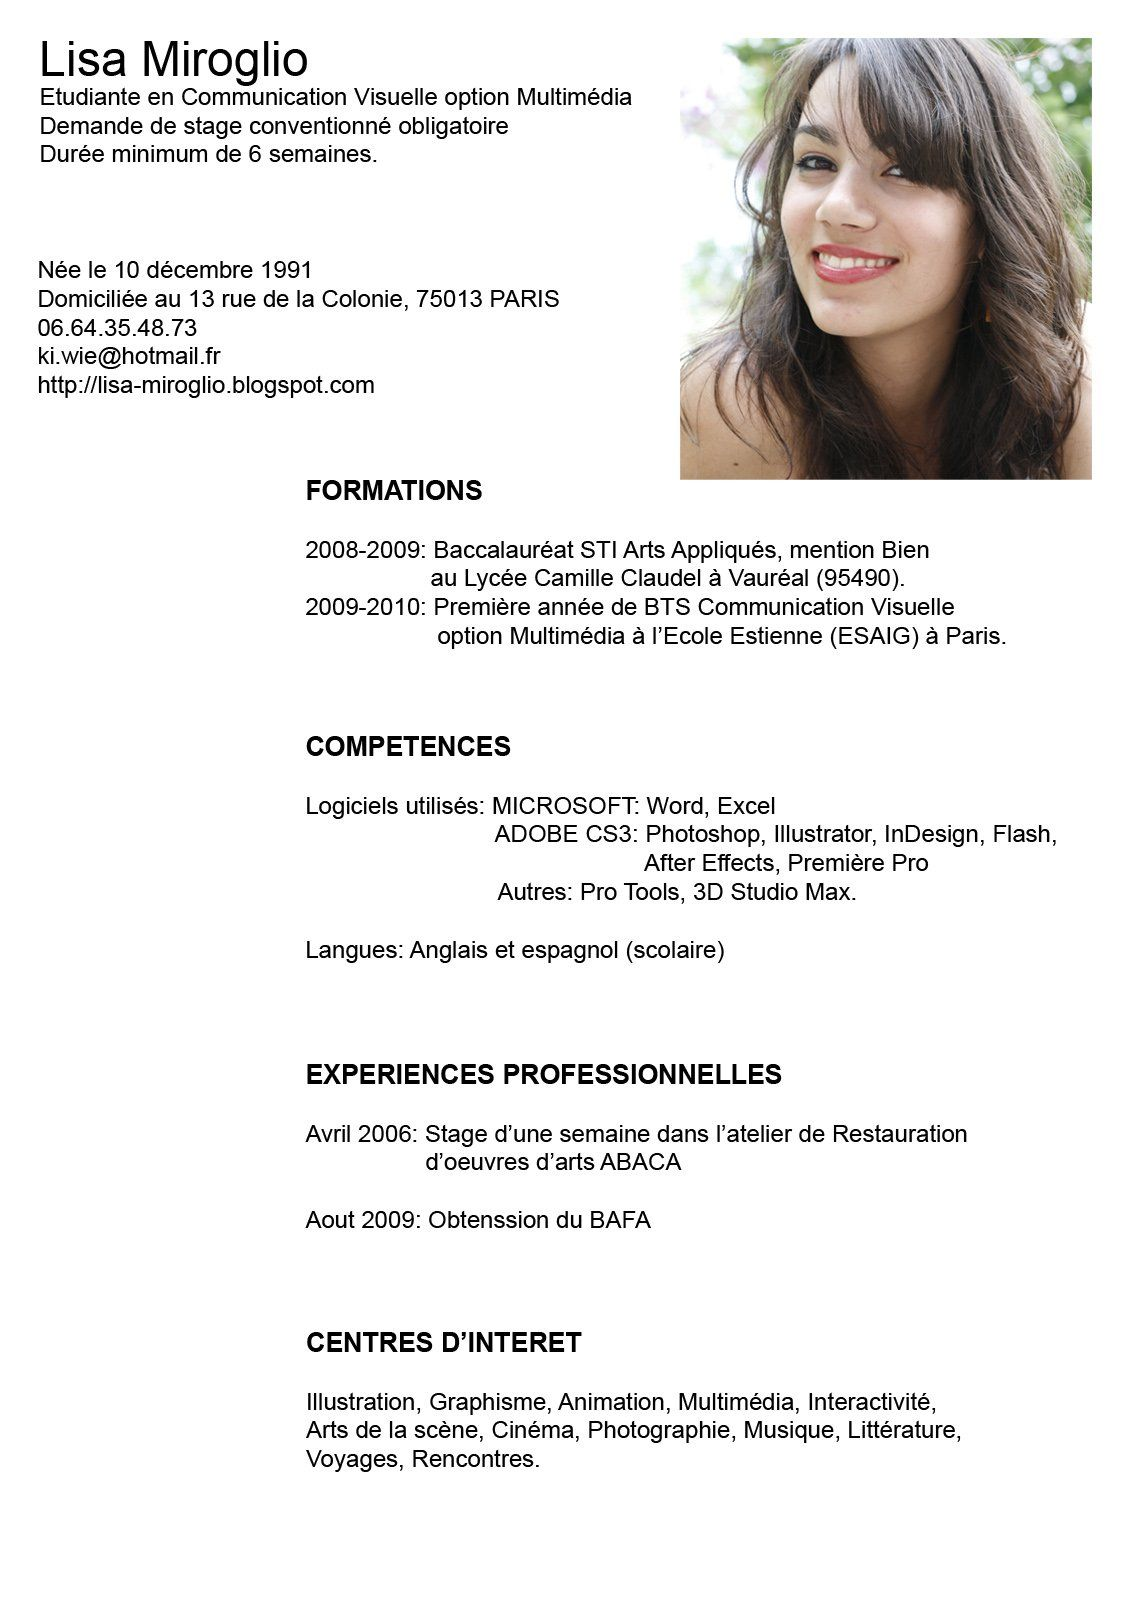 Pin By C On E4 Pinterest Curriculum Resume And Sample Resume